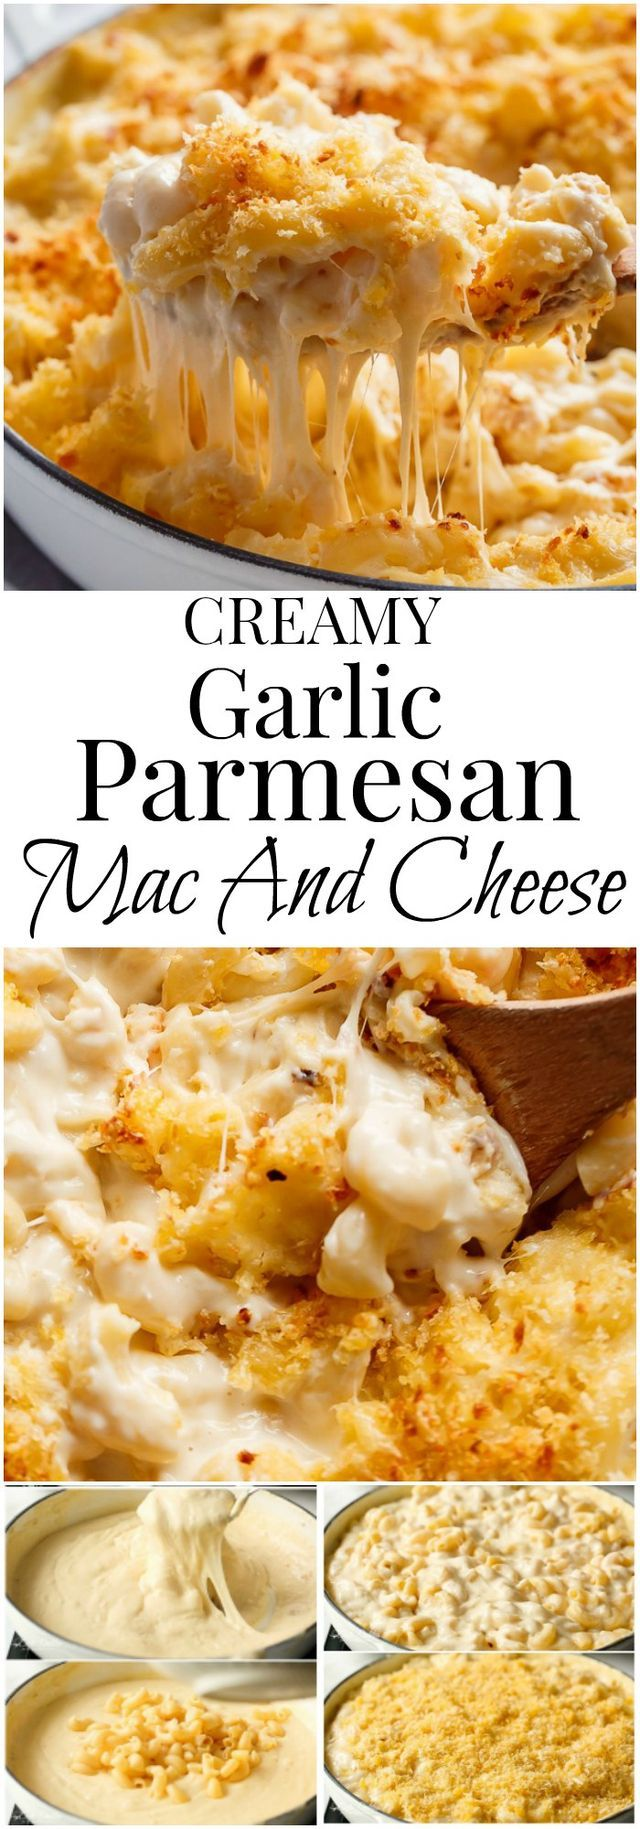 Creamy Garlic Parmesan Mac And Cheese This Garlic Parmesan Mac And Cheese is better than the original! A thick and creamy garlic parmesan cheese sauce coats your macaroni, topped with parmesan fried b